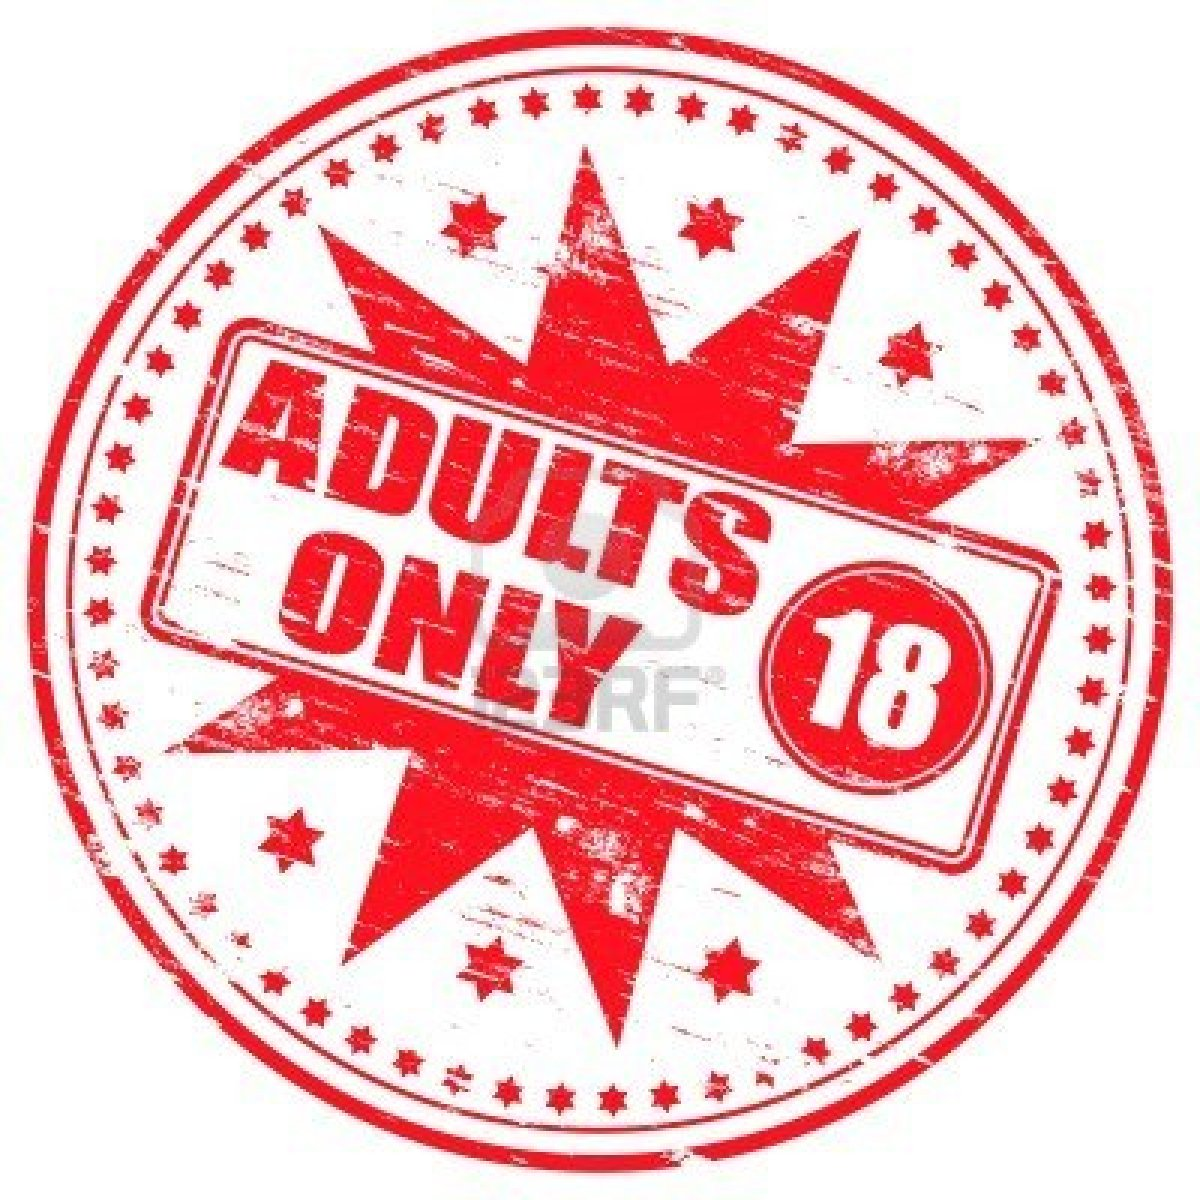 only For adult